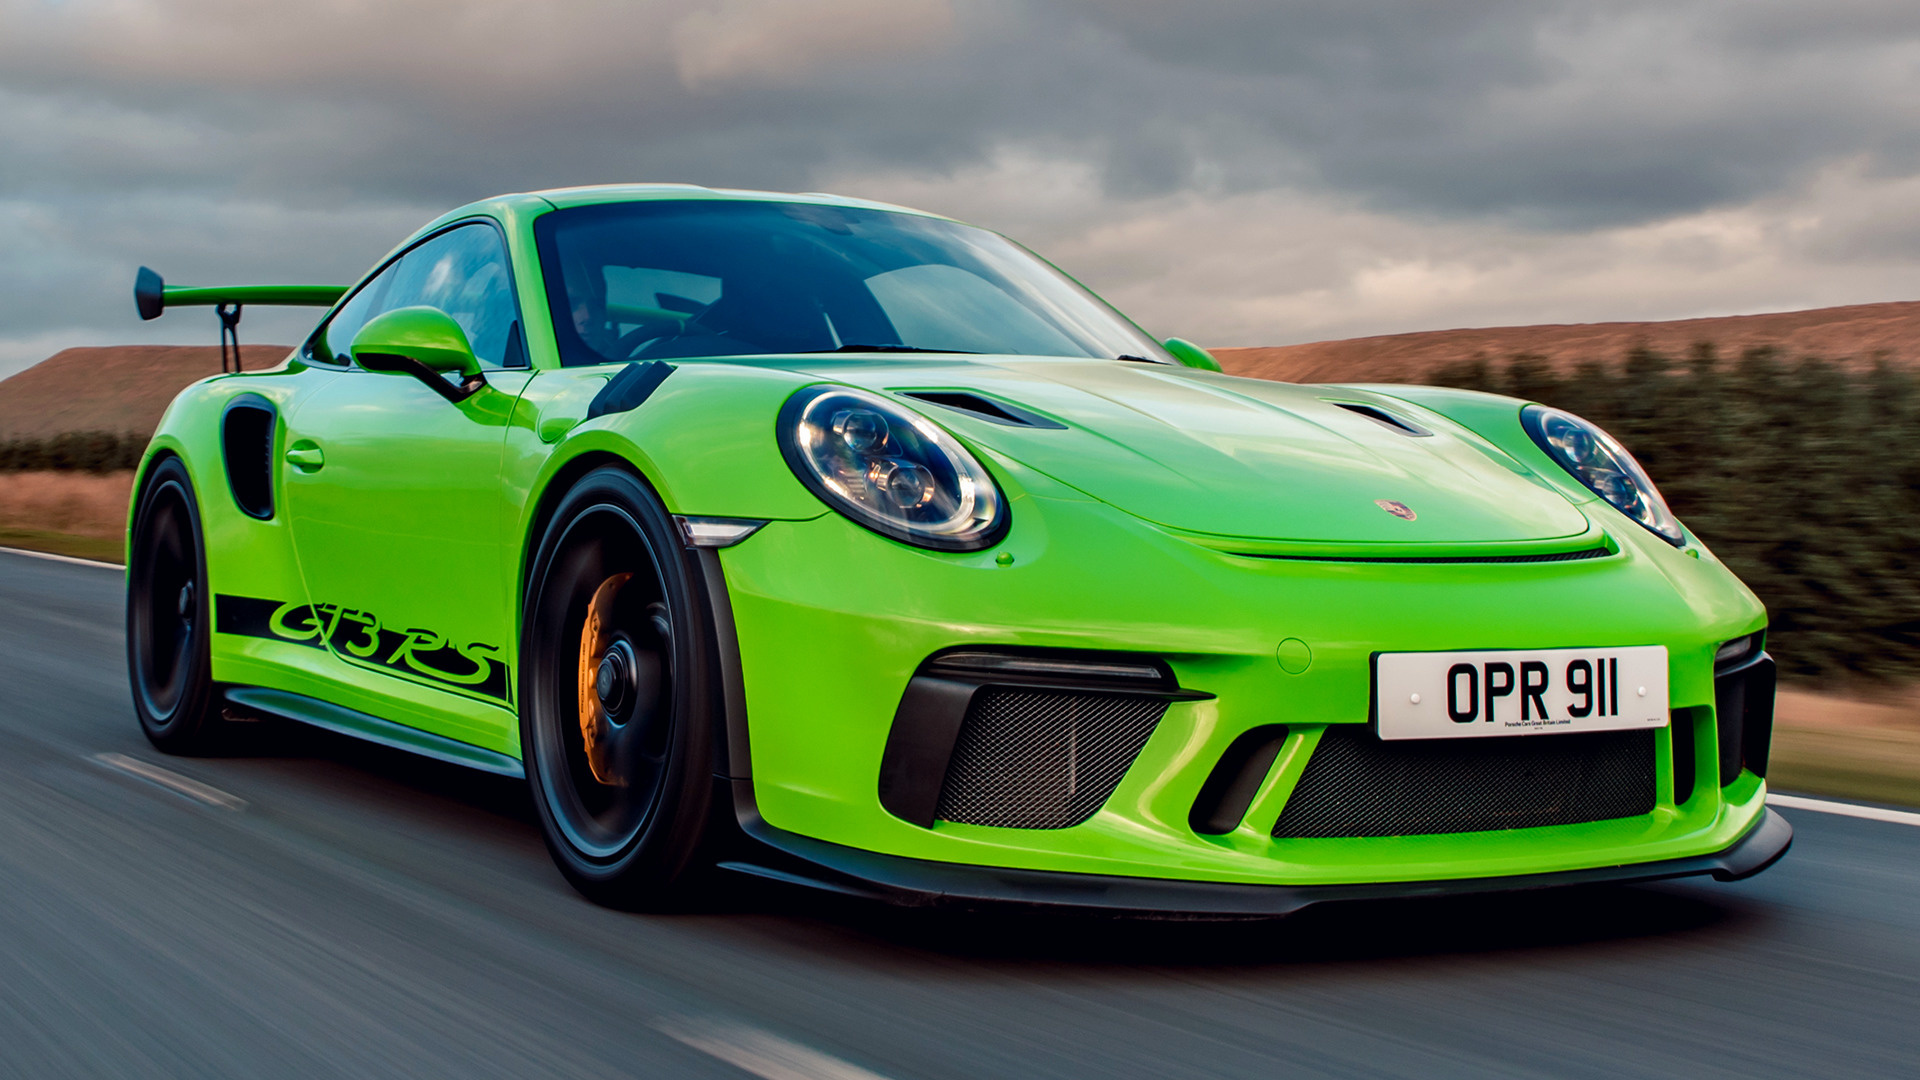 2018 Porsche 911 Gt3 Rs Uk Wallpapers And Hd Images